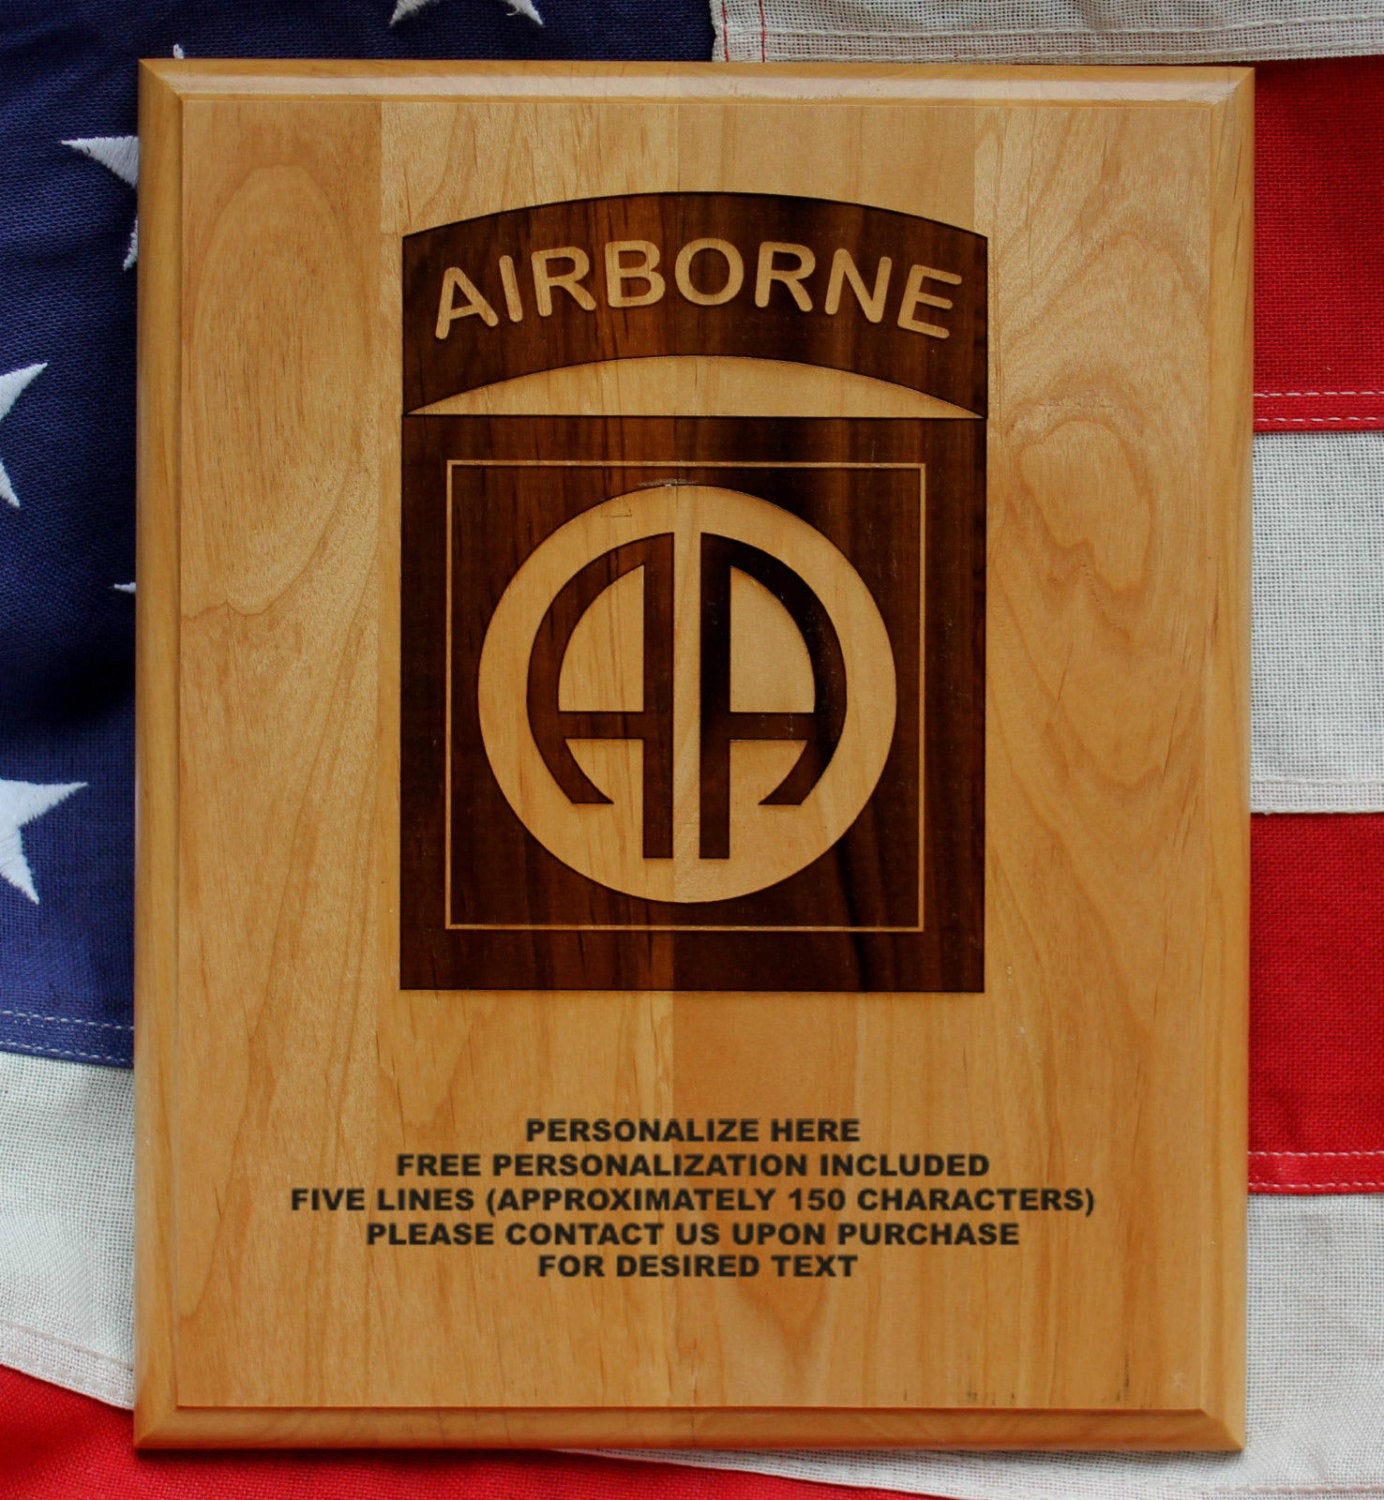 82nd Airborne Division Plaque